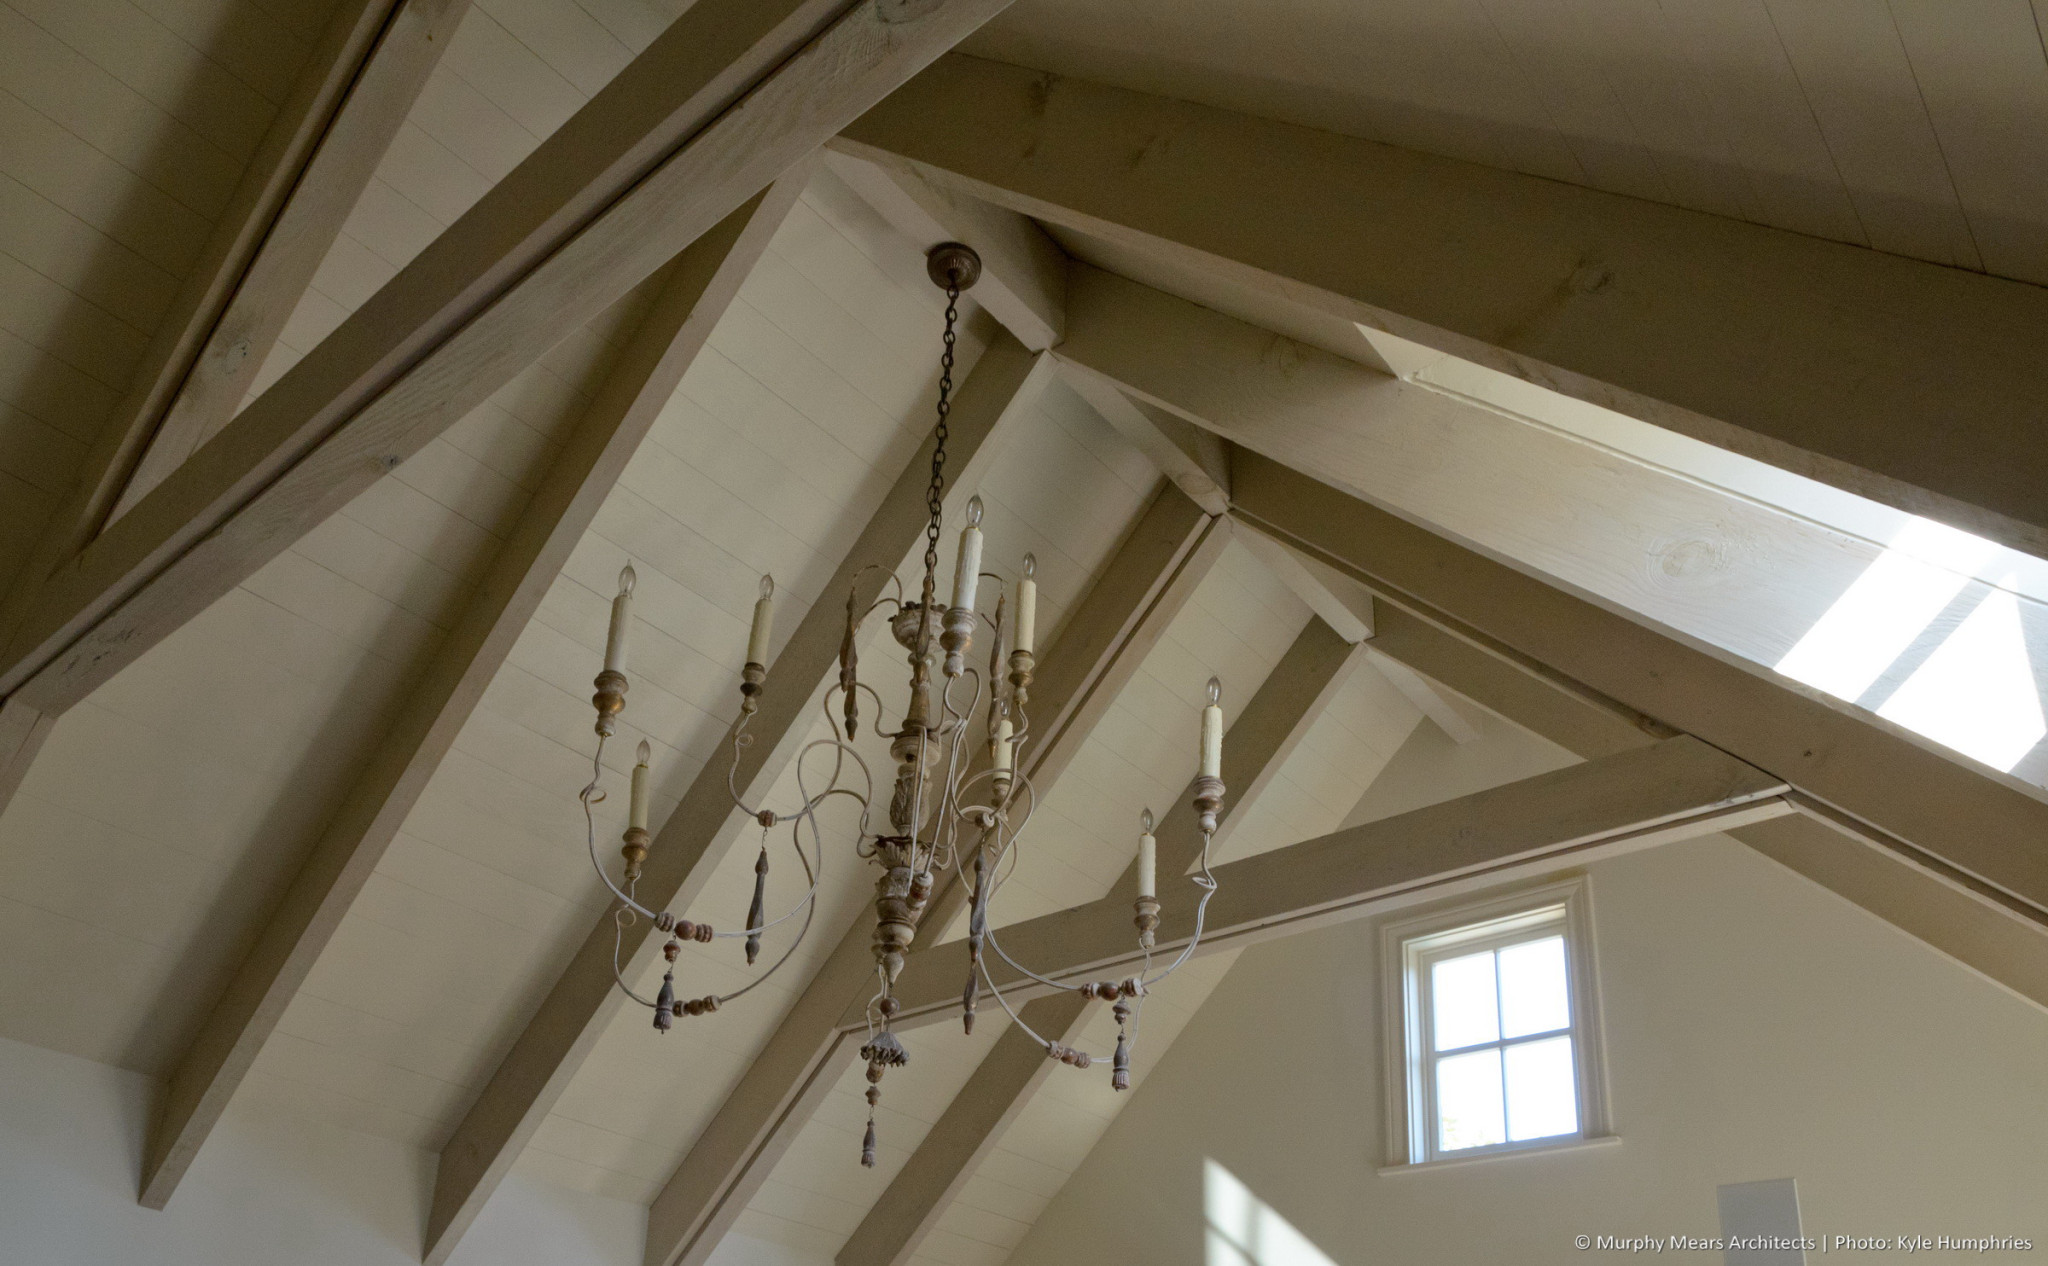 Pemberton Residence - Master bedroom ceiling trusses and beams with high natural light.